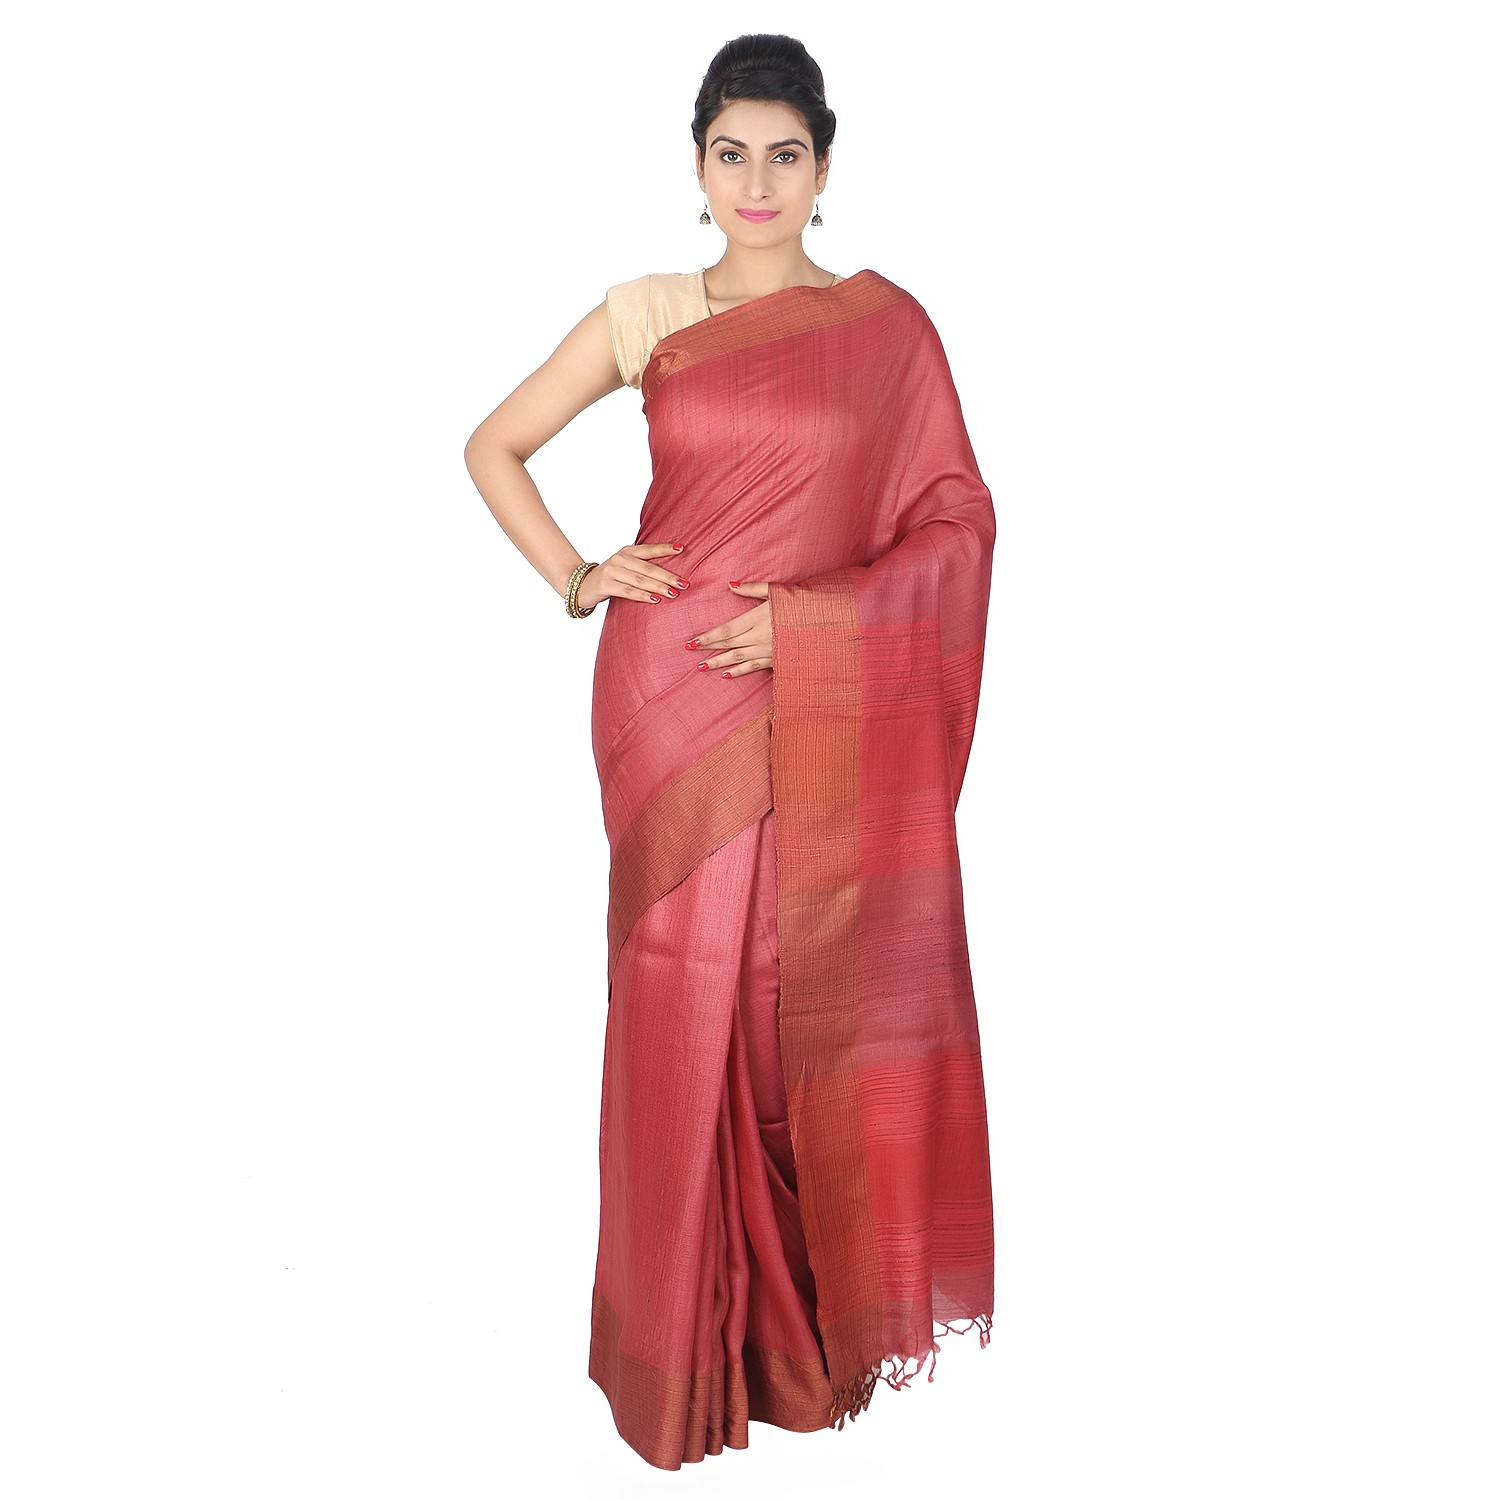 Handmade Red Eri Desi Tussar Silk Kantha Work Saree by Weavers of Bihar